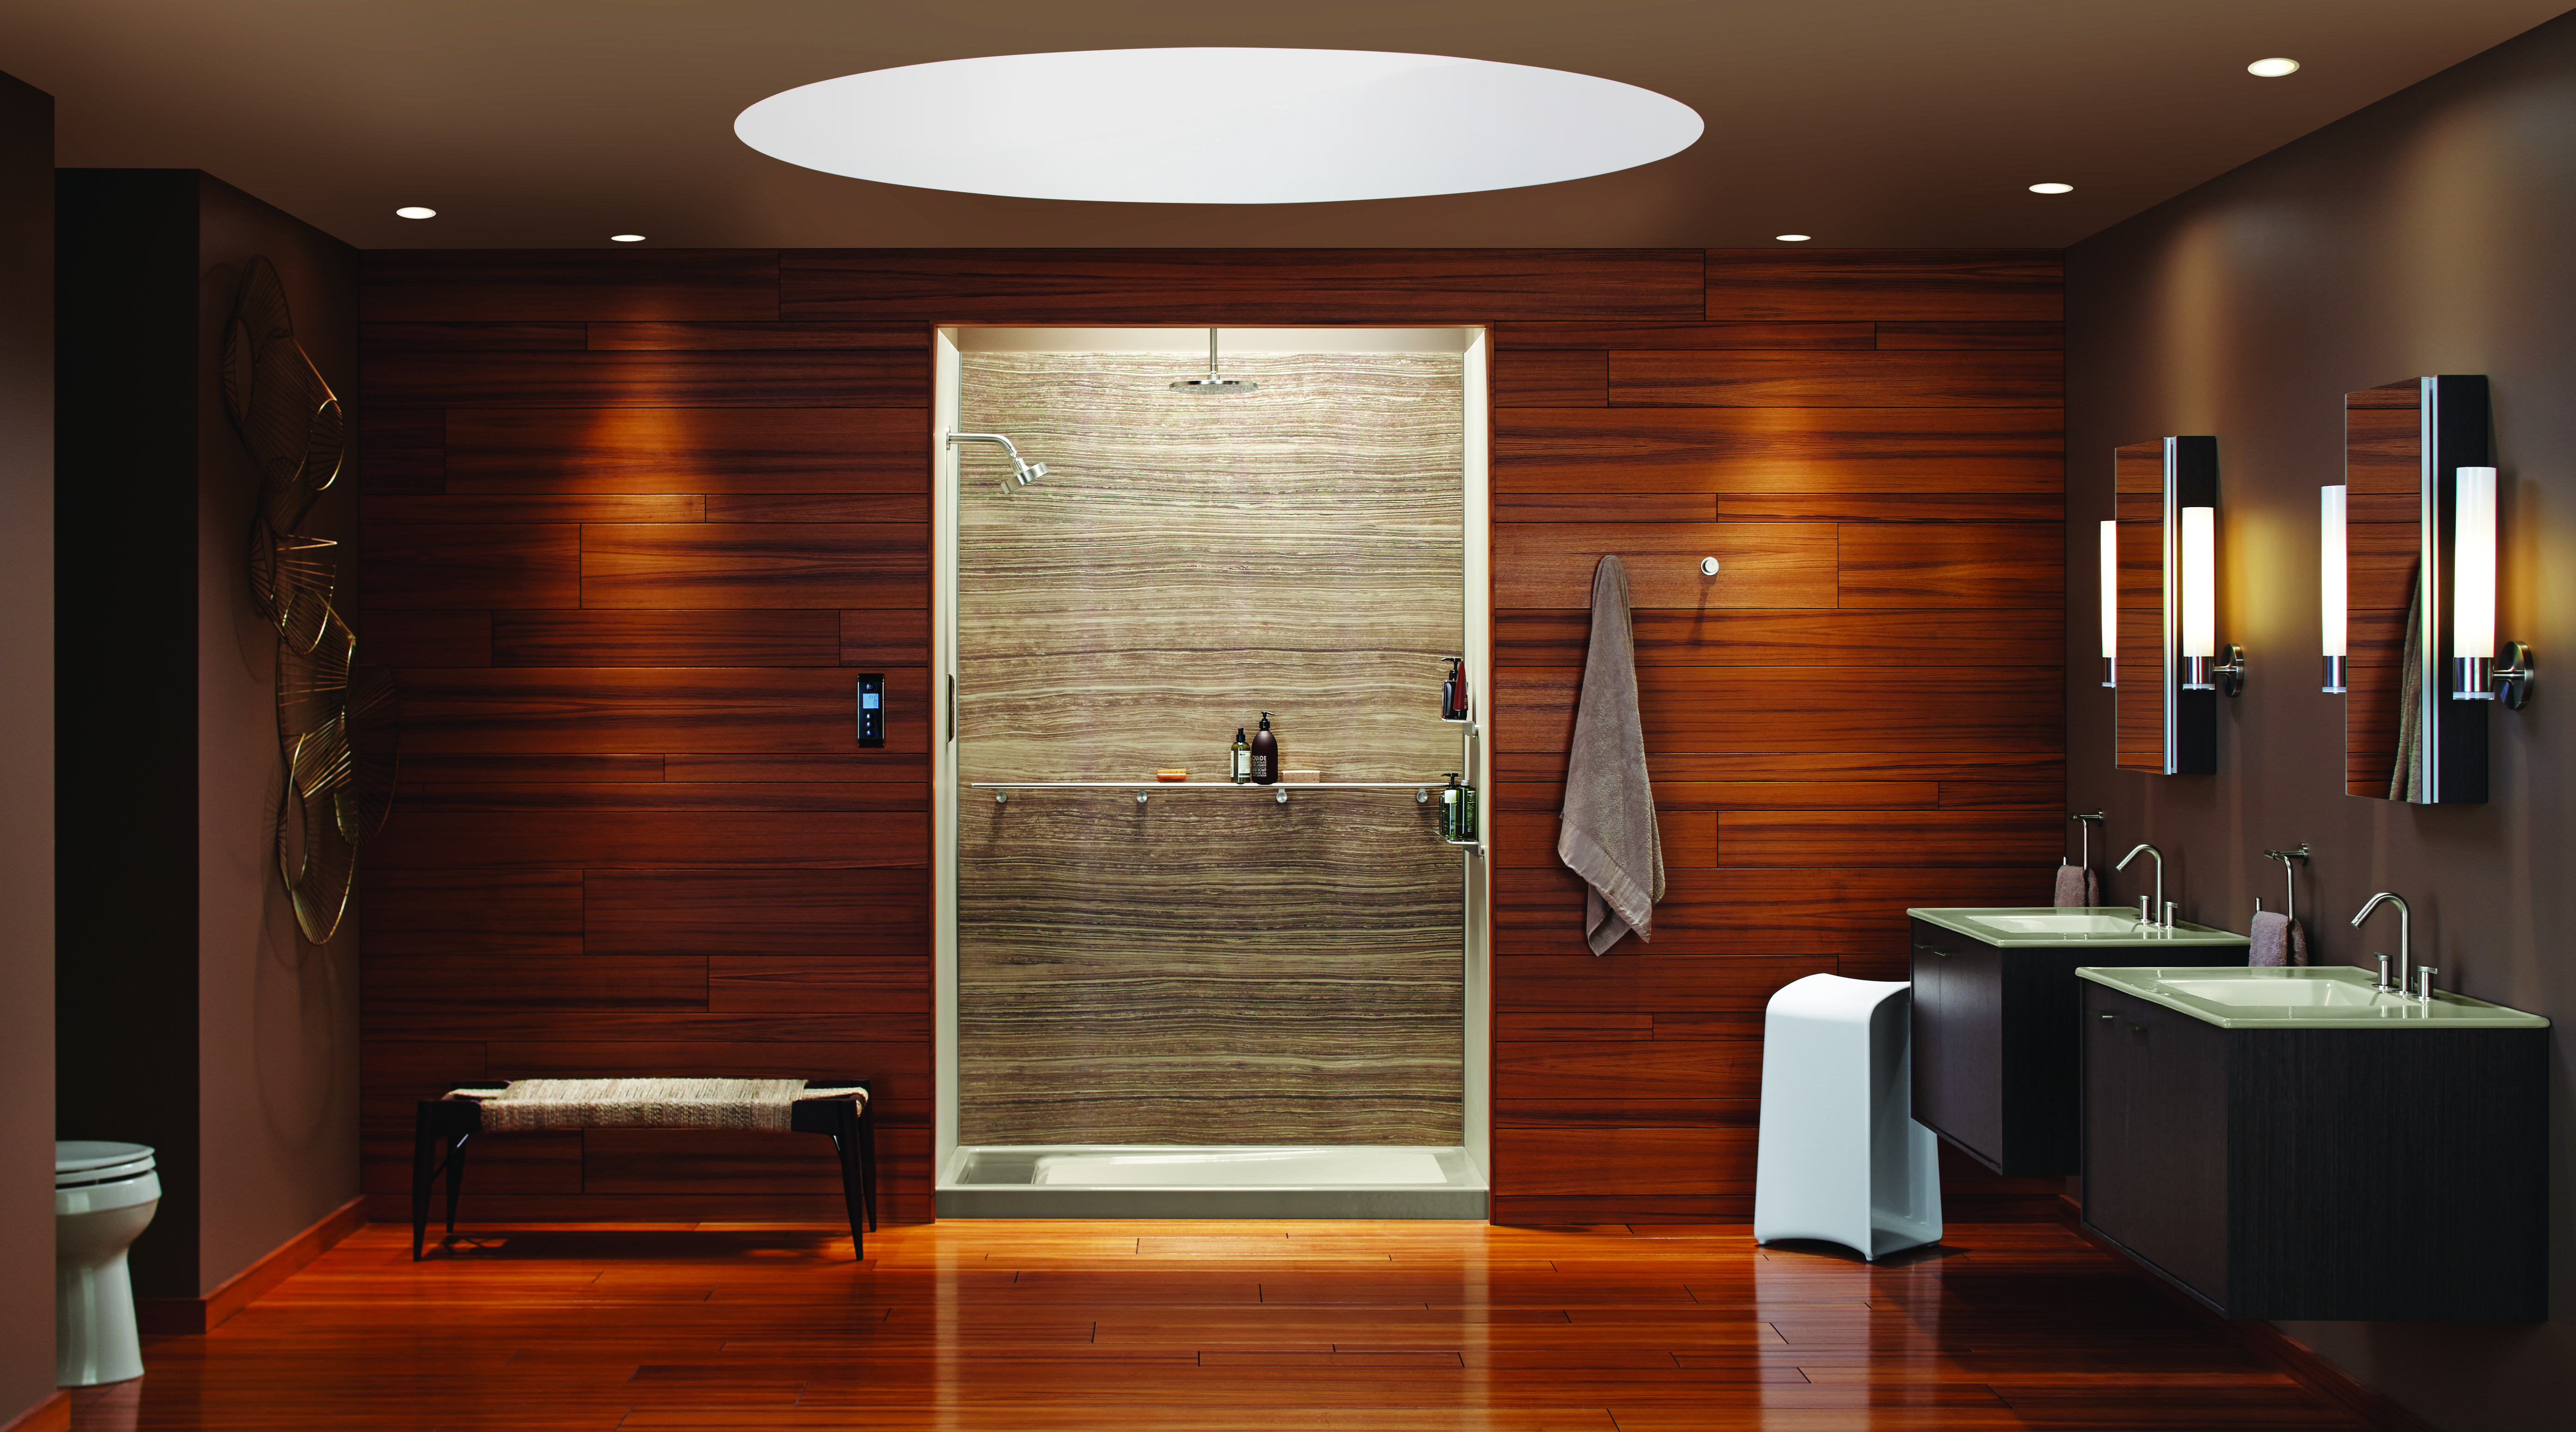 21 kitchen and bath product innovations from KBIS 2012 | Pro Remodeler